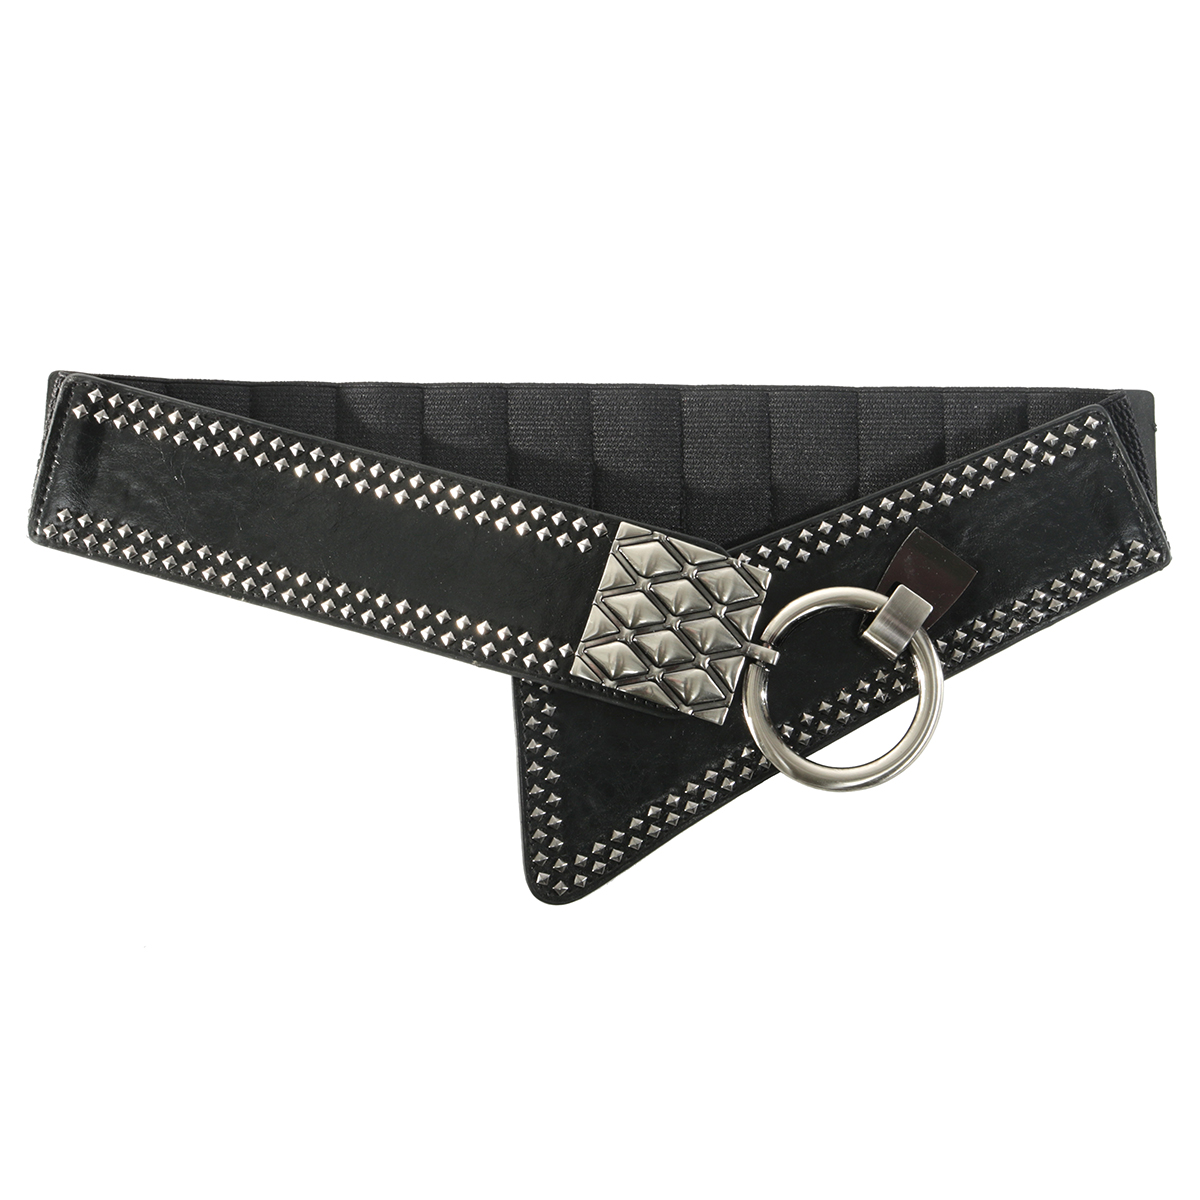 Black Rivet Belt